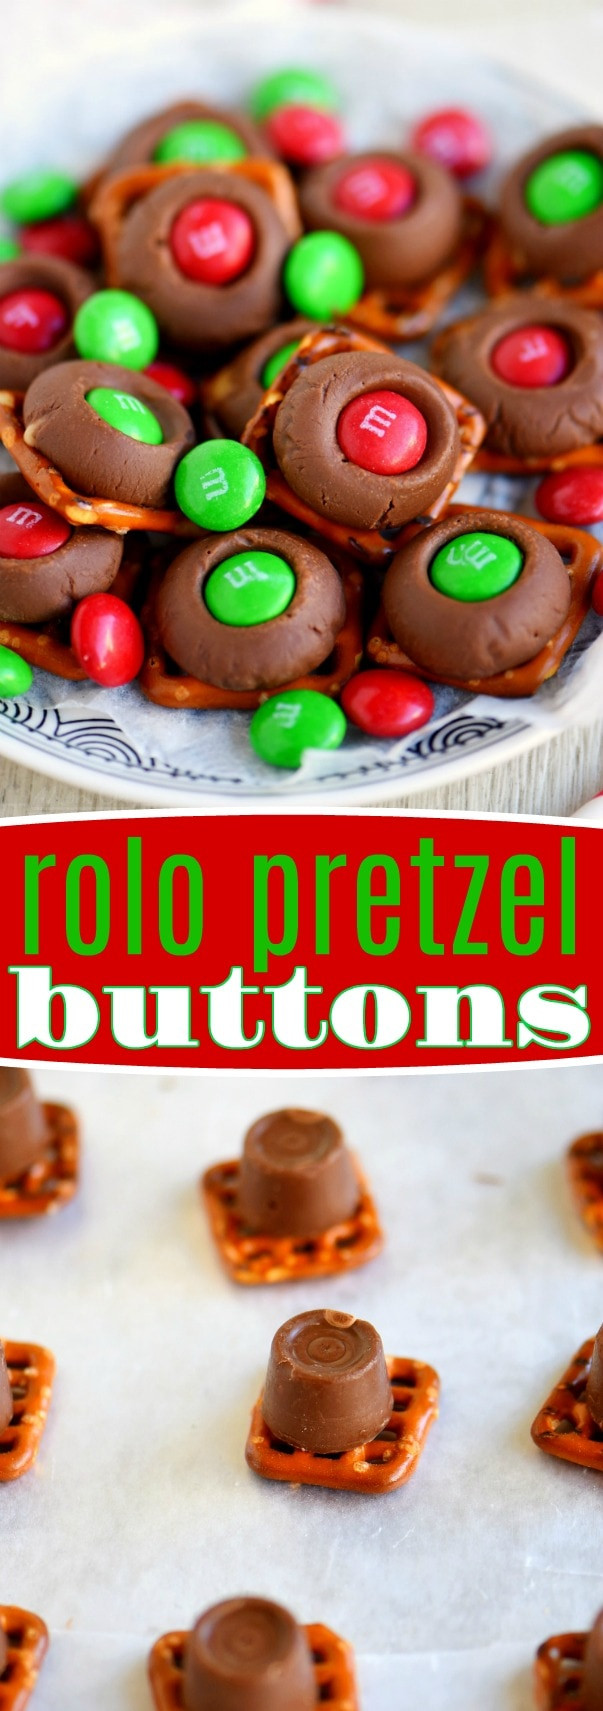 Rolo Christmas Cookies  Rolo Pretzel Buttons Just 3 Ingre nts Mom Timeout